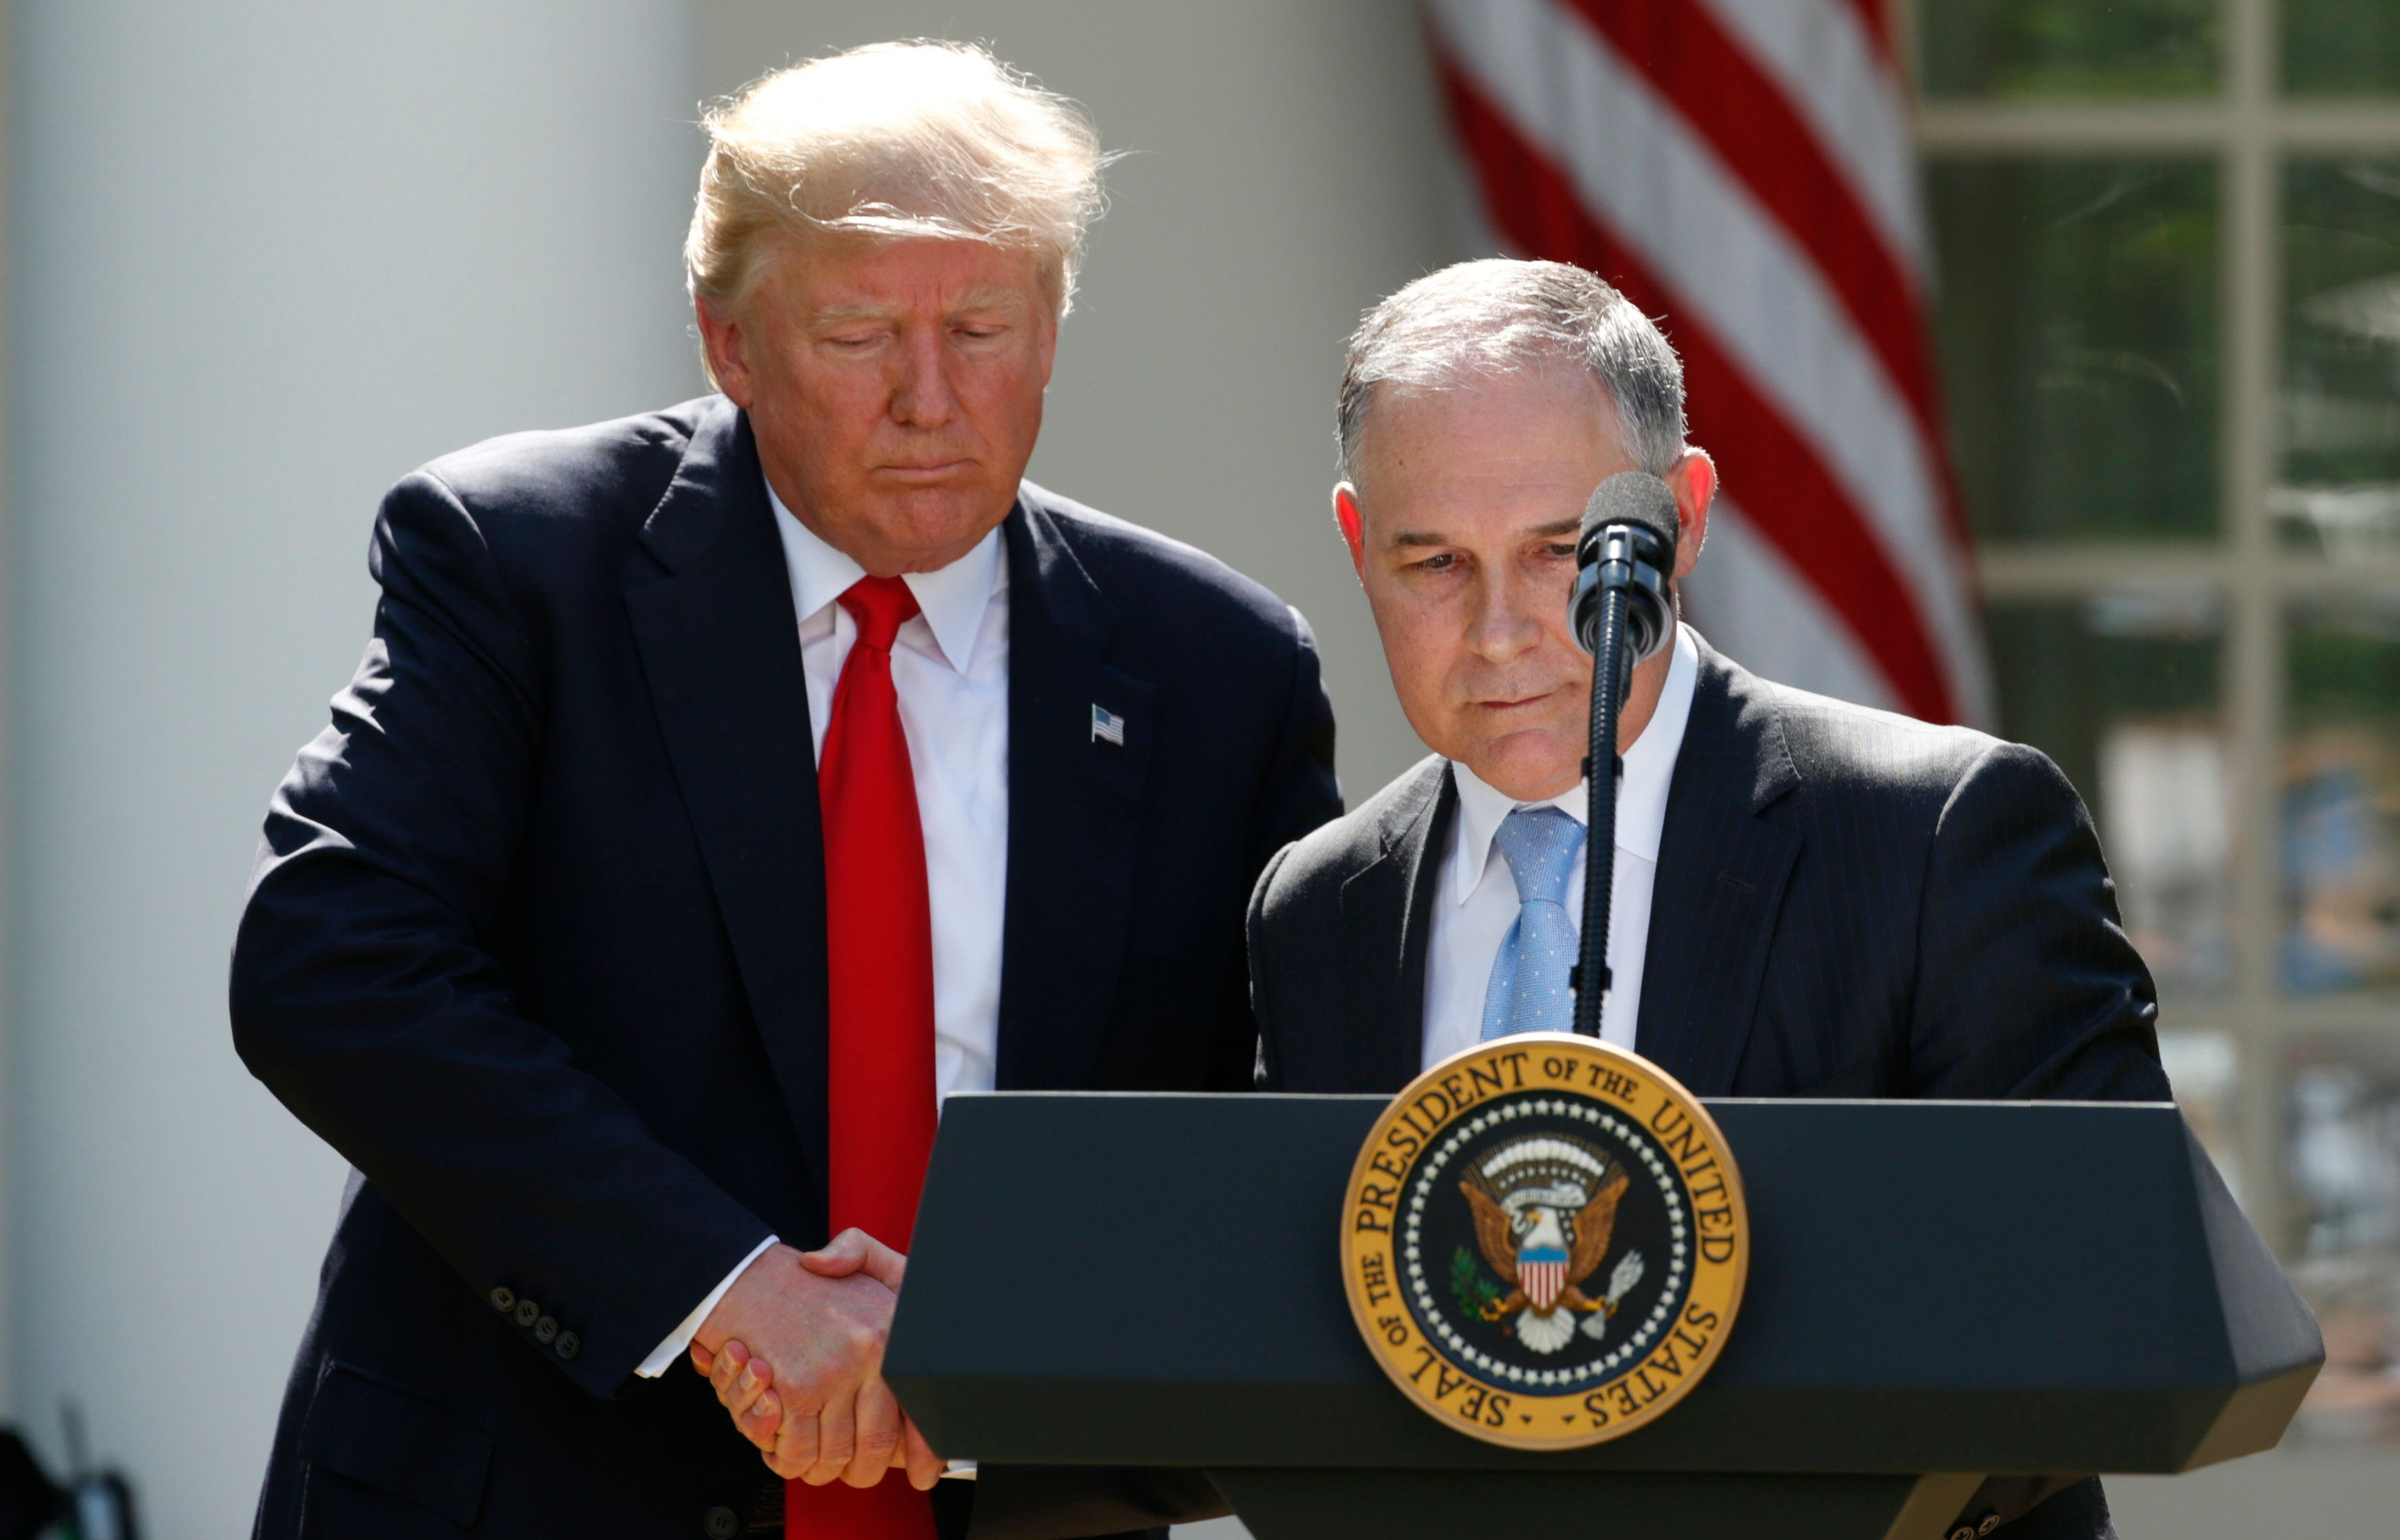 U.S. President Donald Trump (L) invites EPA Administrator Scott Pruitt to the podium after announcing his decision that the United States will withdraw from the Paris Climate Agreement, in the Rose Garden of the White House in Washington, U.S., June 1, 2017. REUTERS/Kevin Lamarque